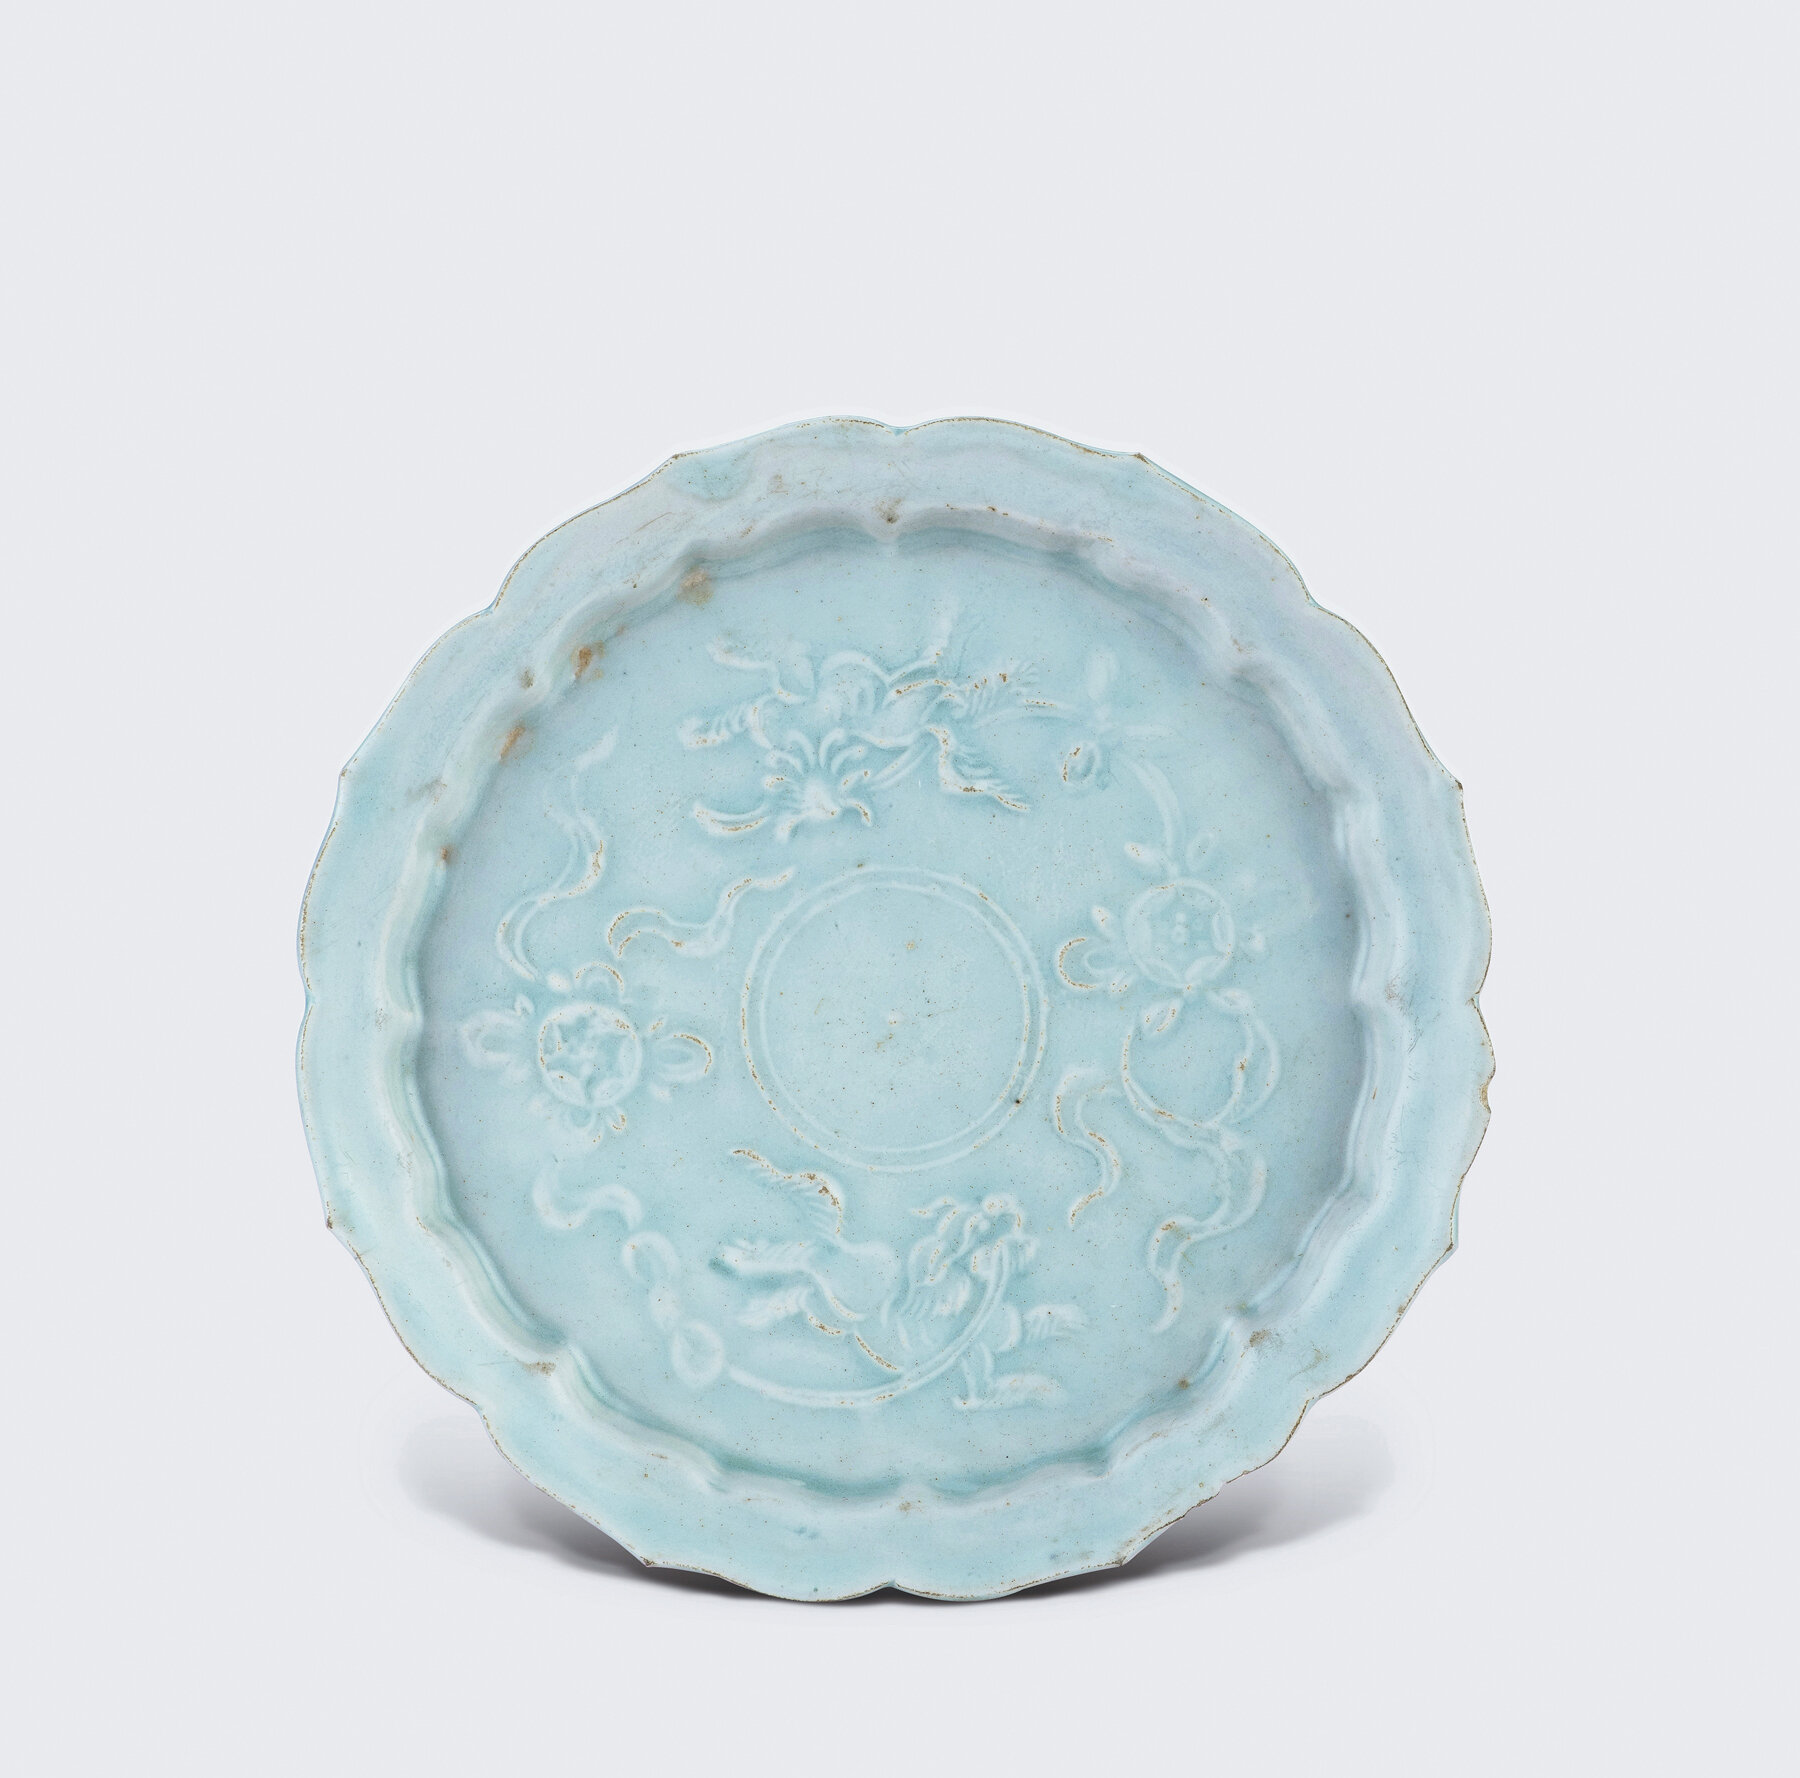 A finely moulded Qingbai dish, Yuan dynasty (1271-1368)